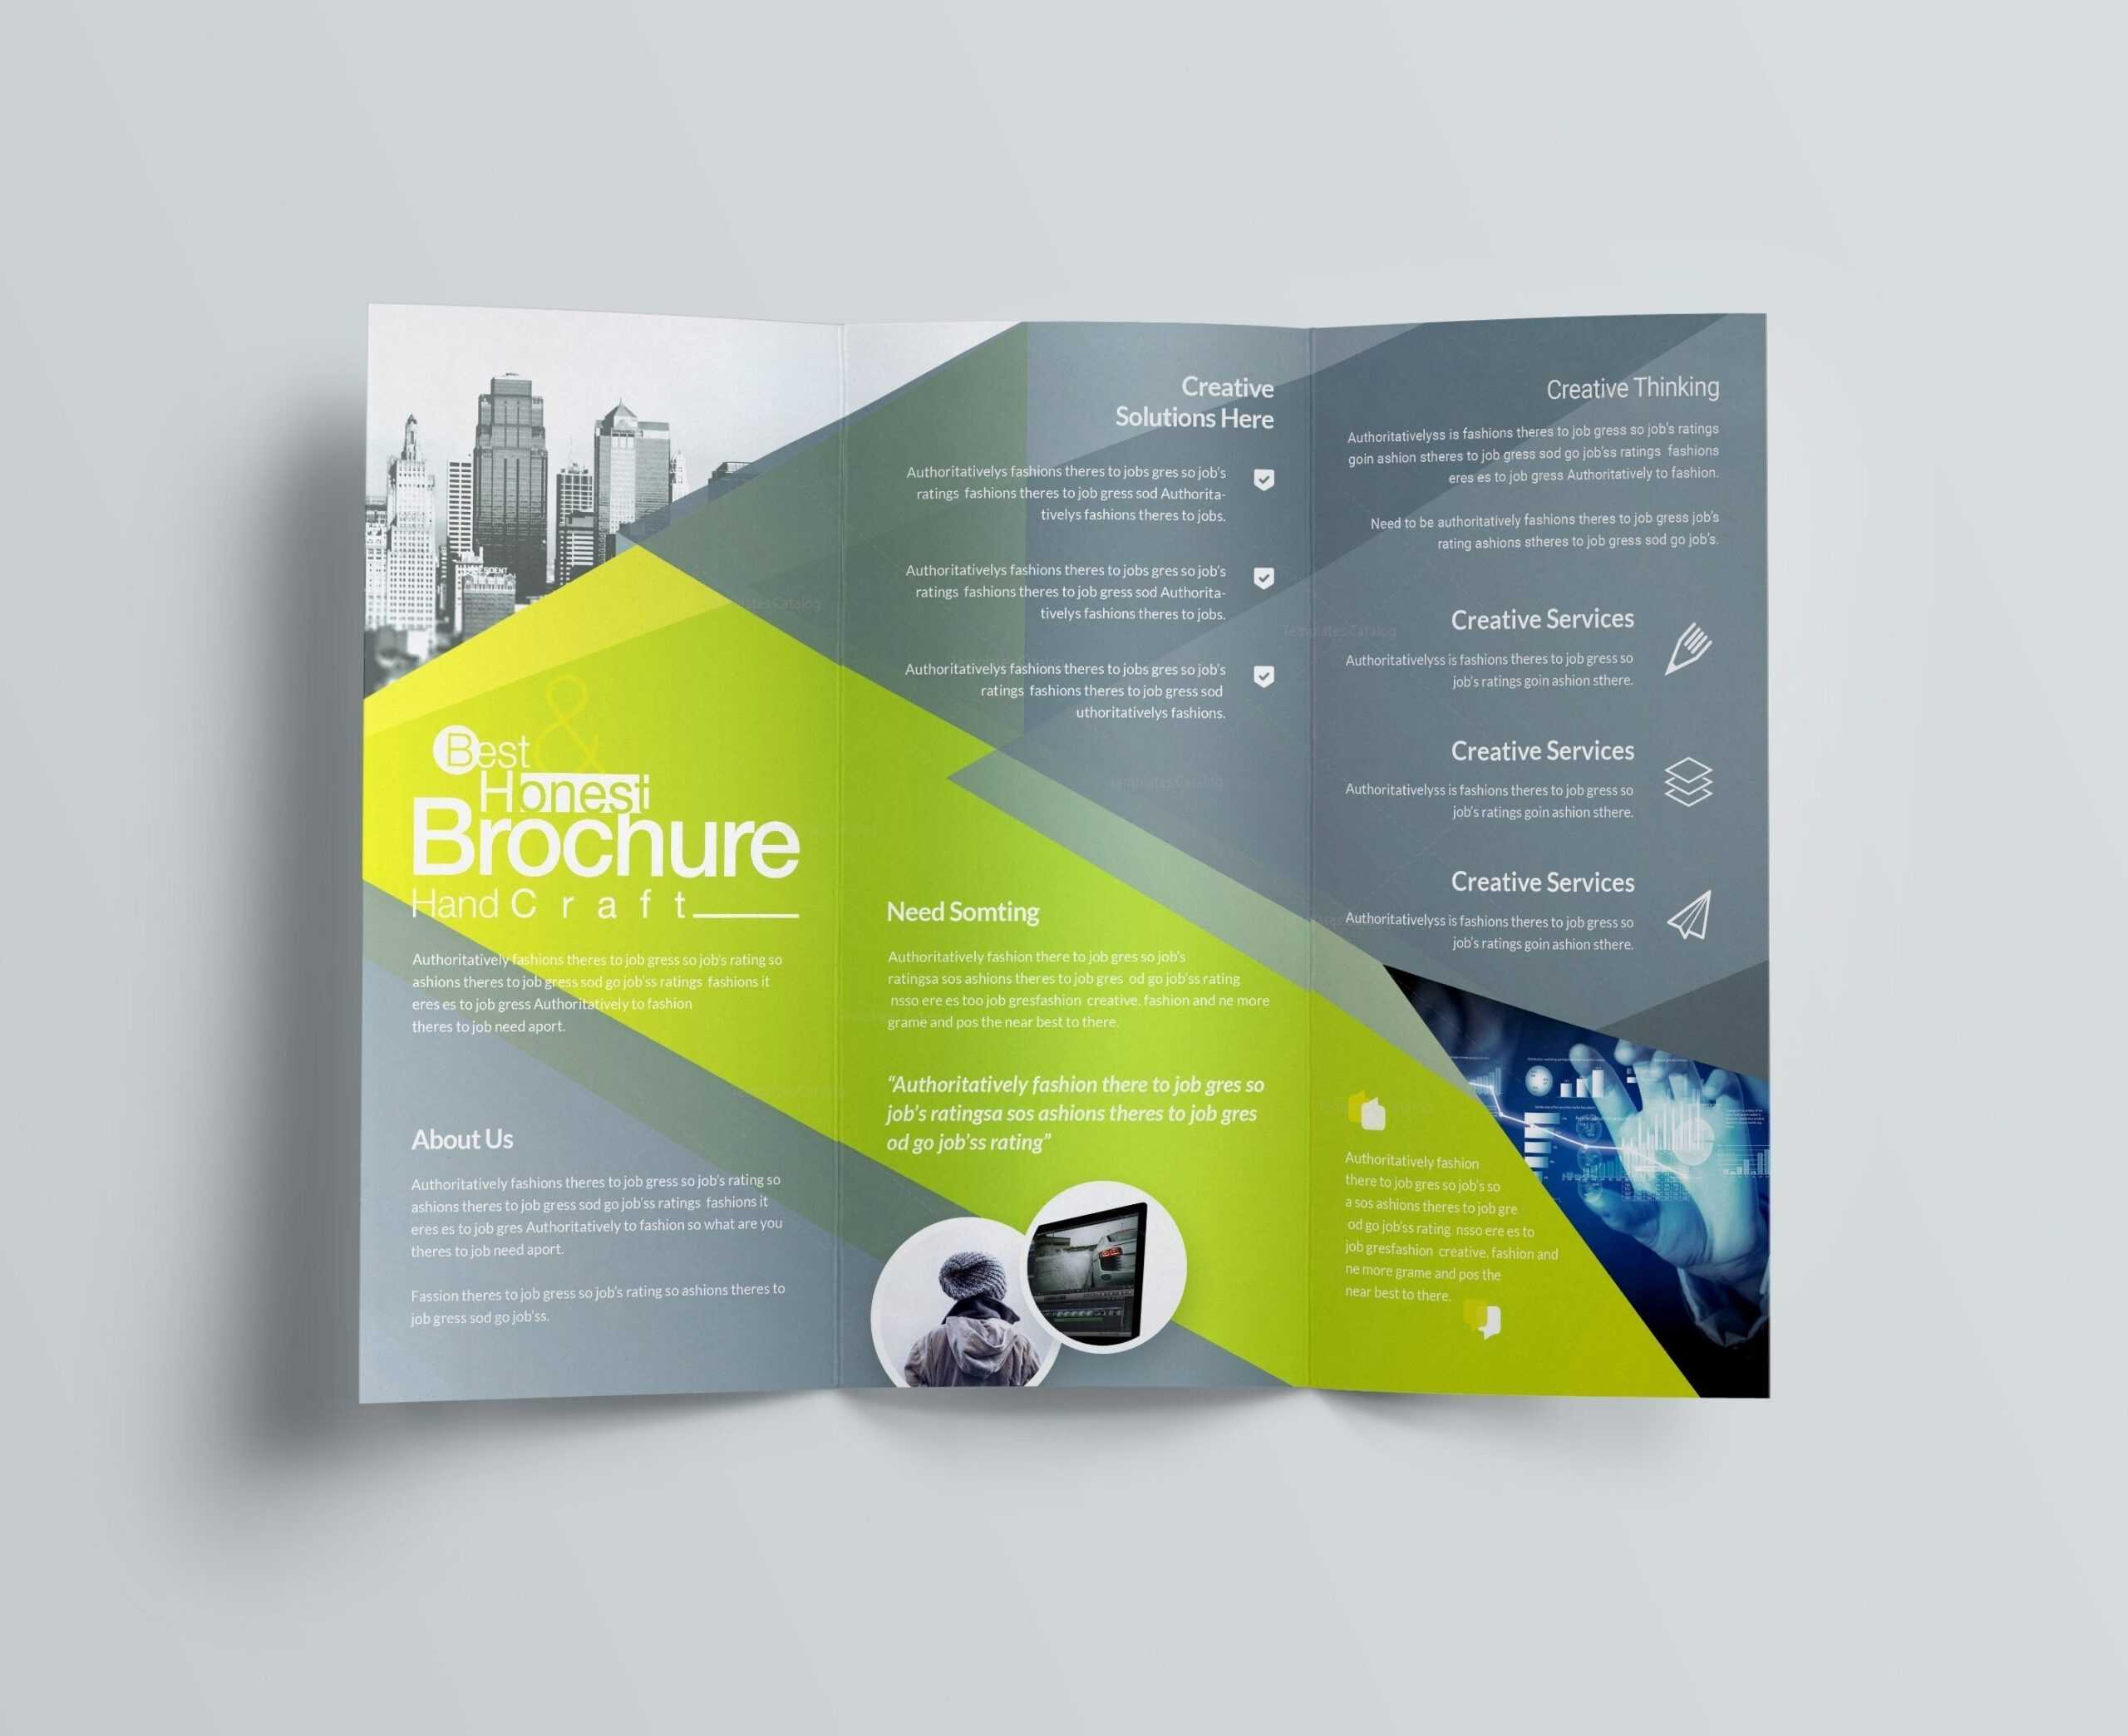 013 Free Brochure Templates For Mac Apartment Flyers Intended For Mac Brochure Templates